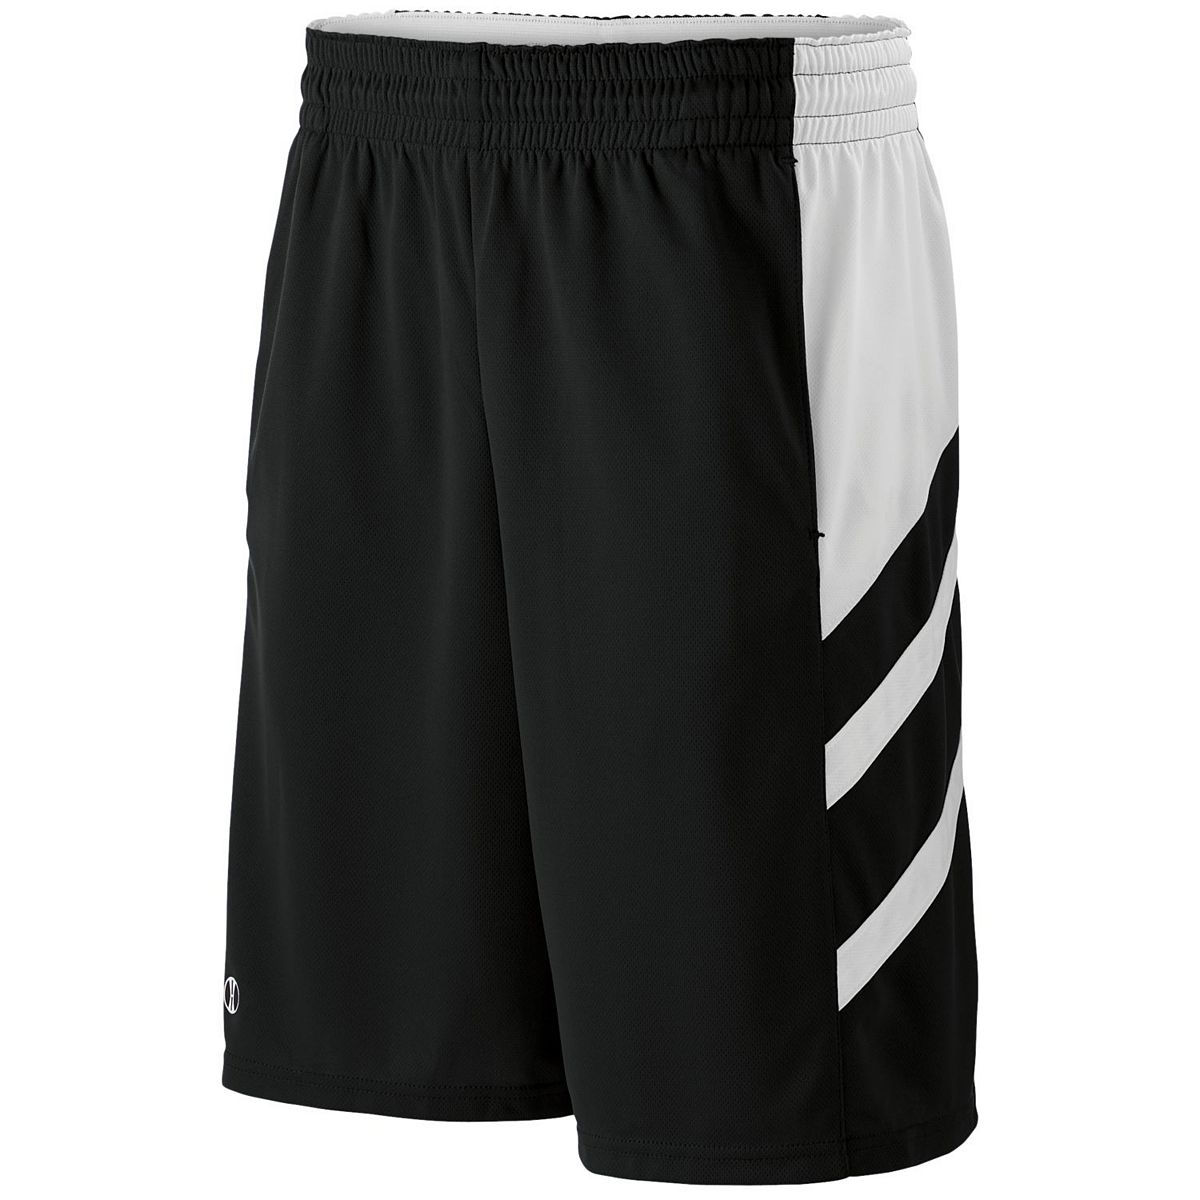 Holloway Youth Helium Short Blk/Whi M - image 1 of 1